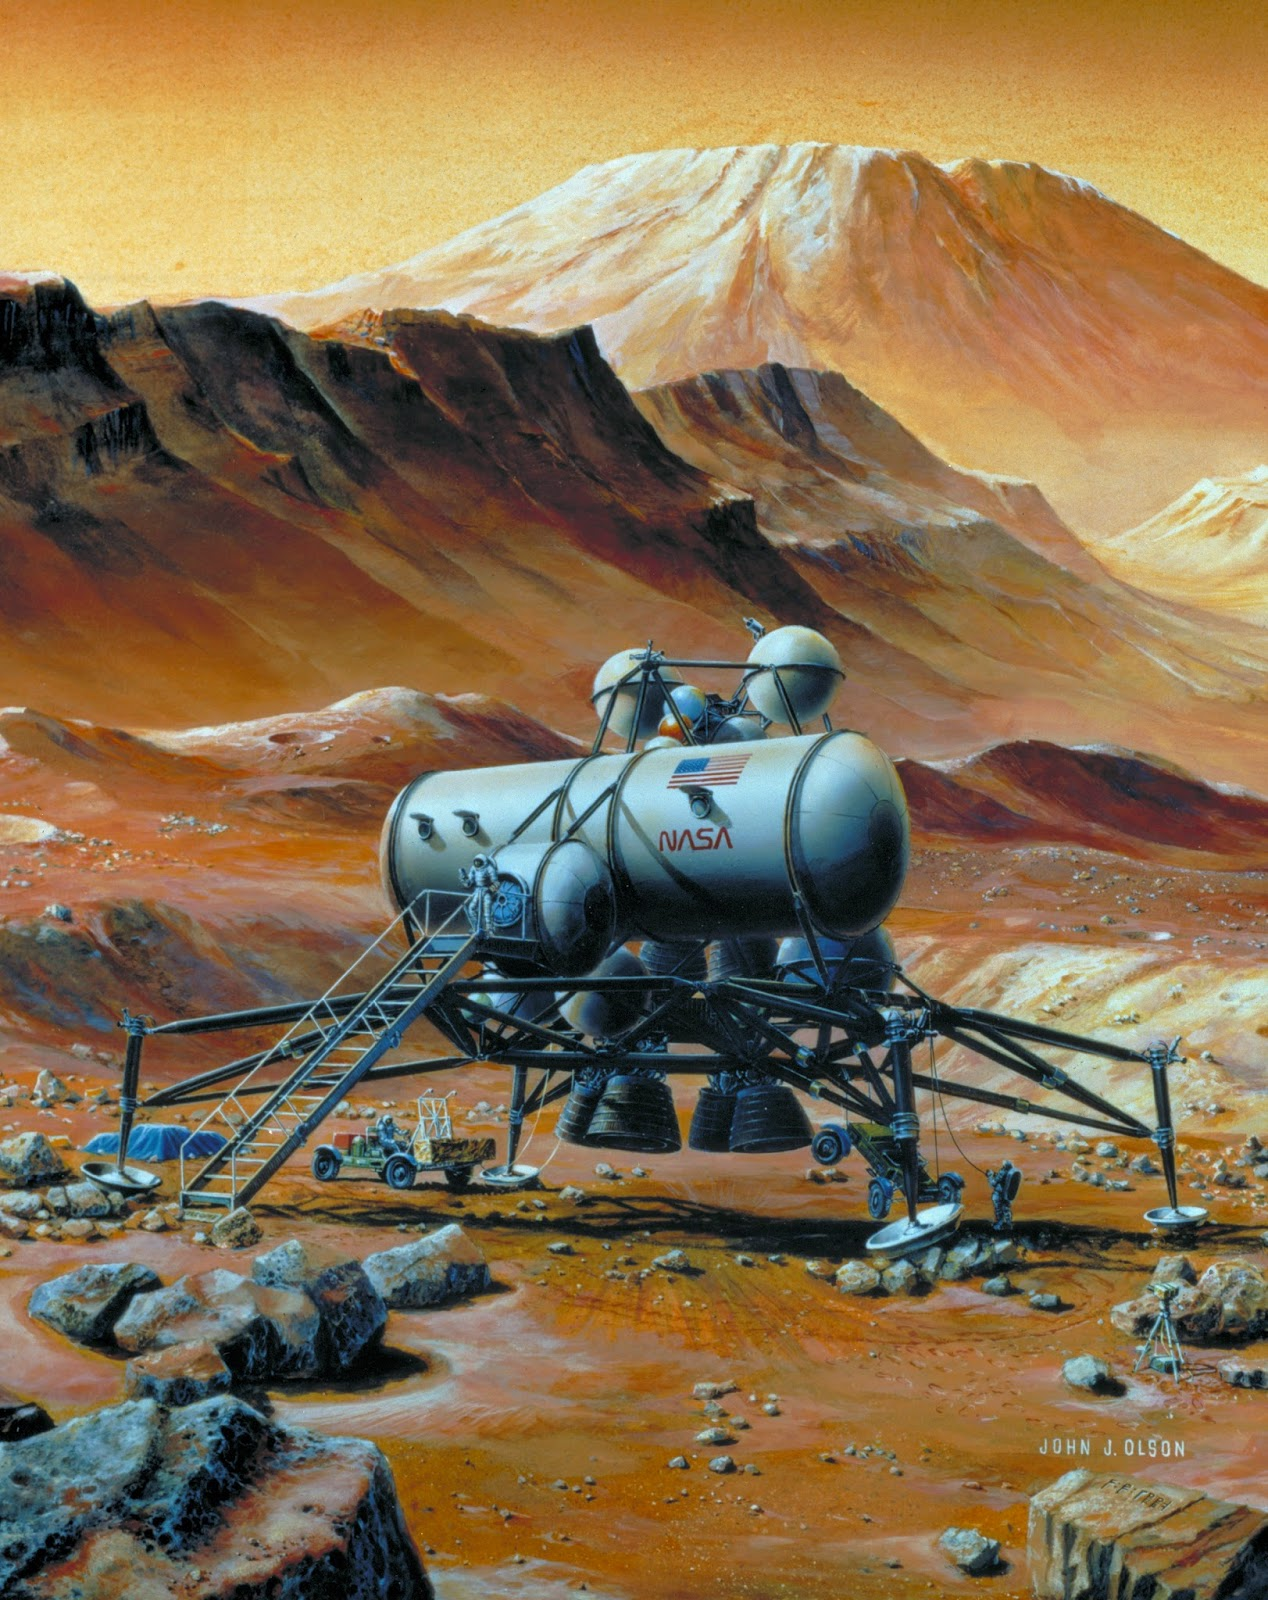 Mars base by John J. Olson